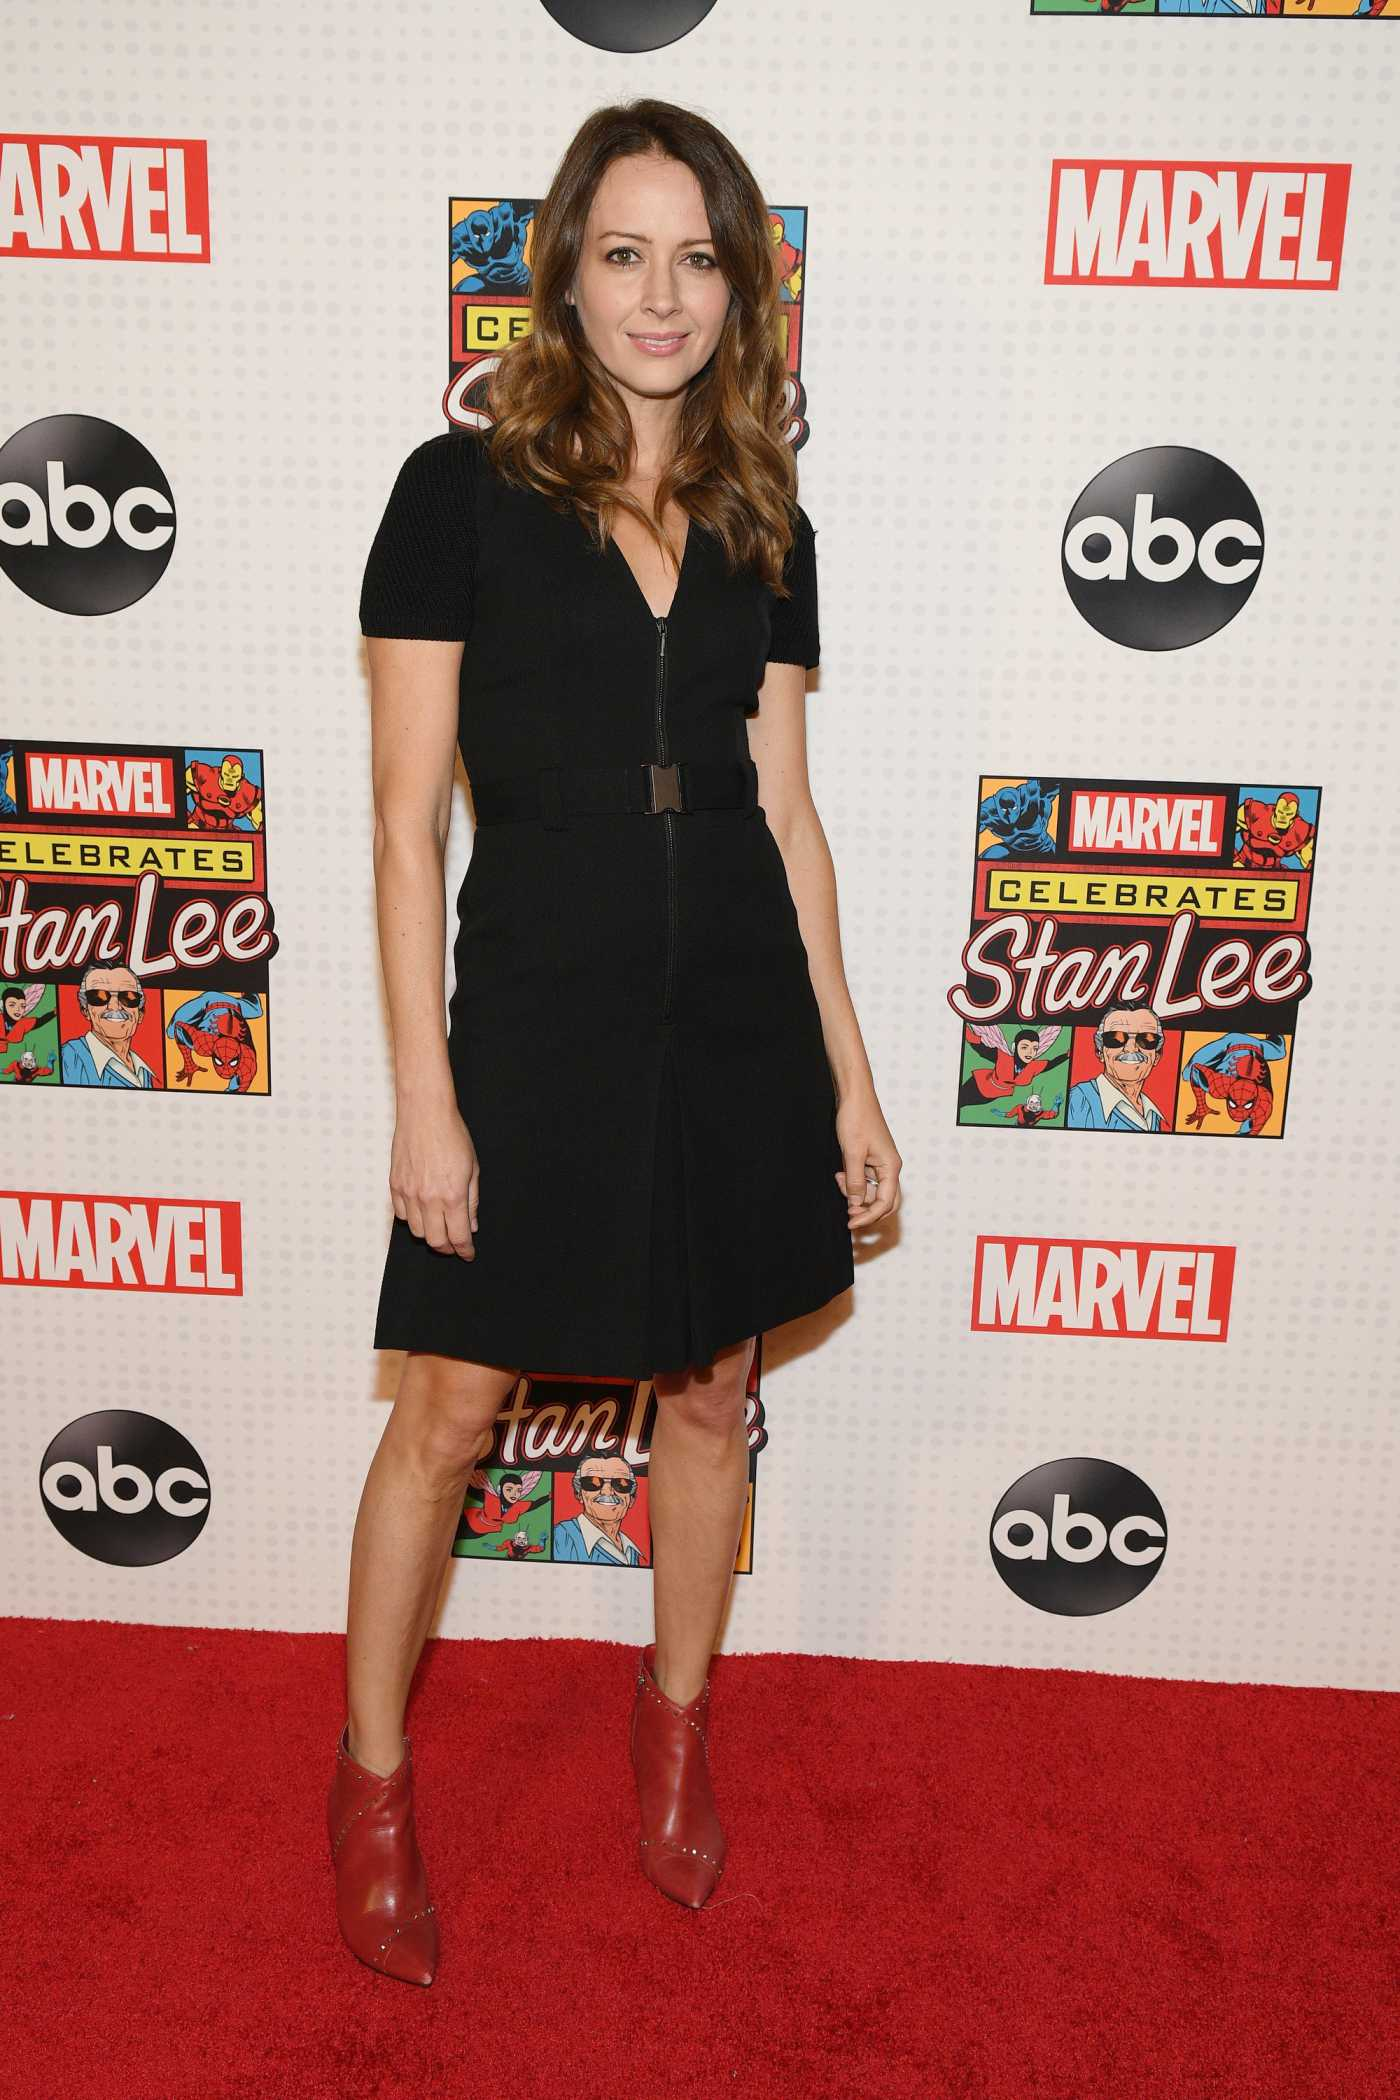 Amy Acker Attends Marvel's Stan Lee Celebrating in New York 12/11/2019